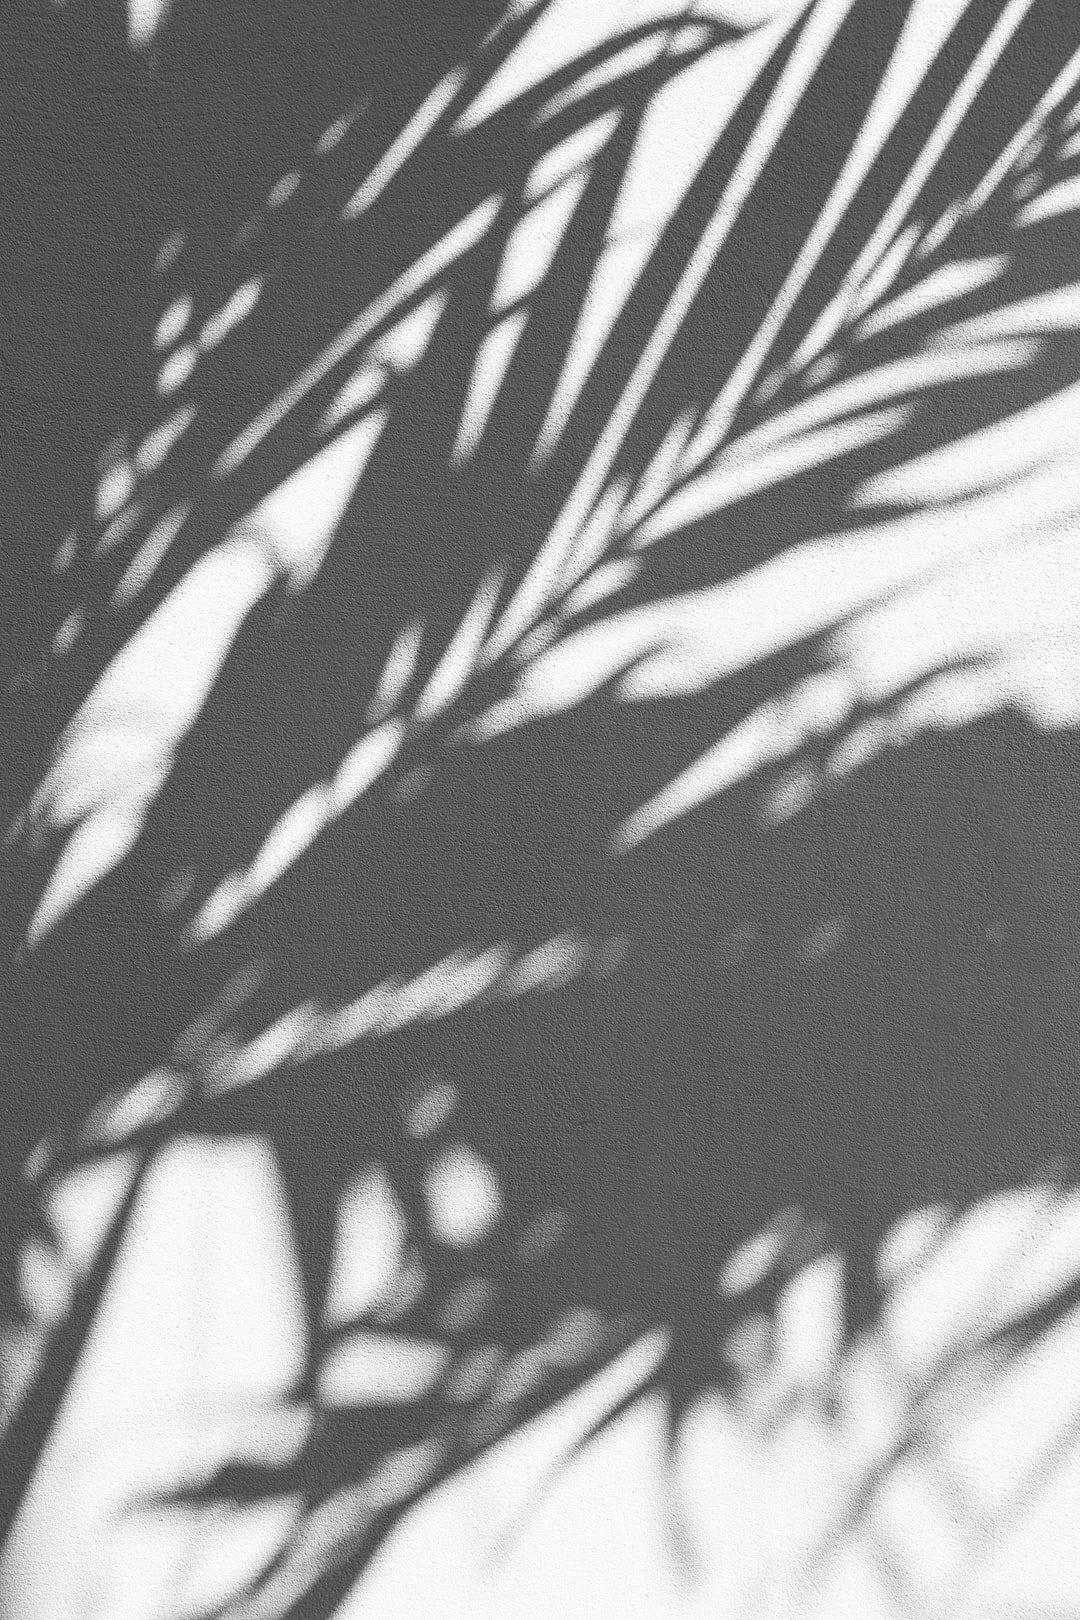 Best 500 Shadow Pictures Download Free Images On Unsplash